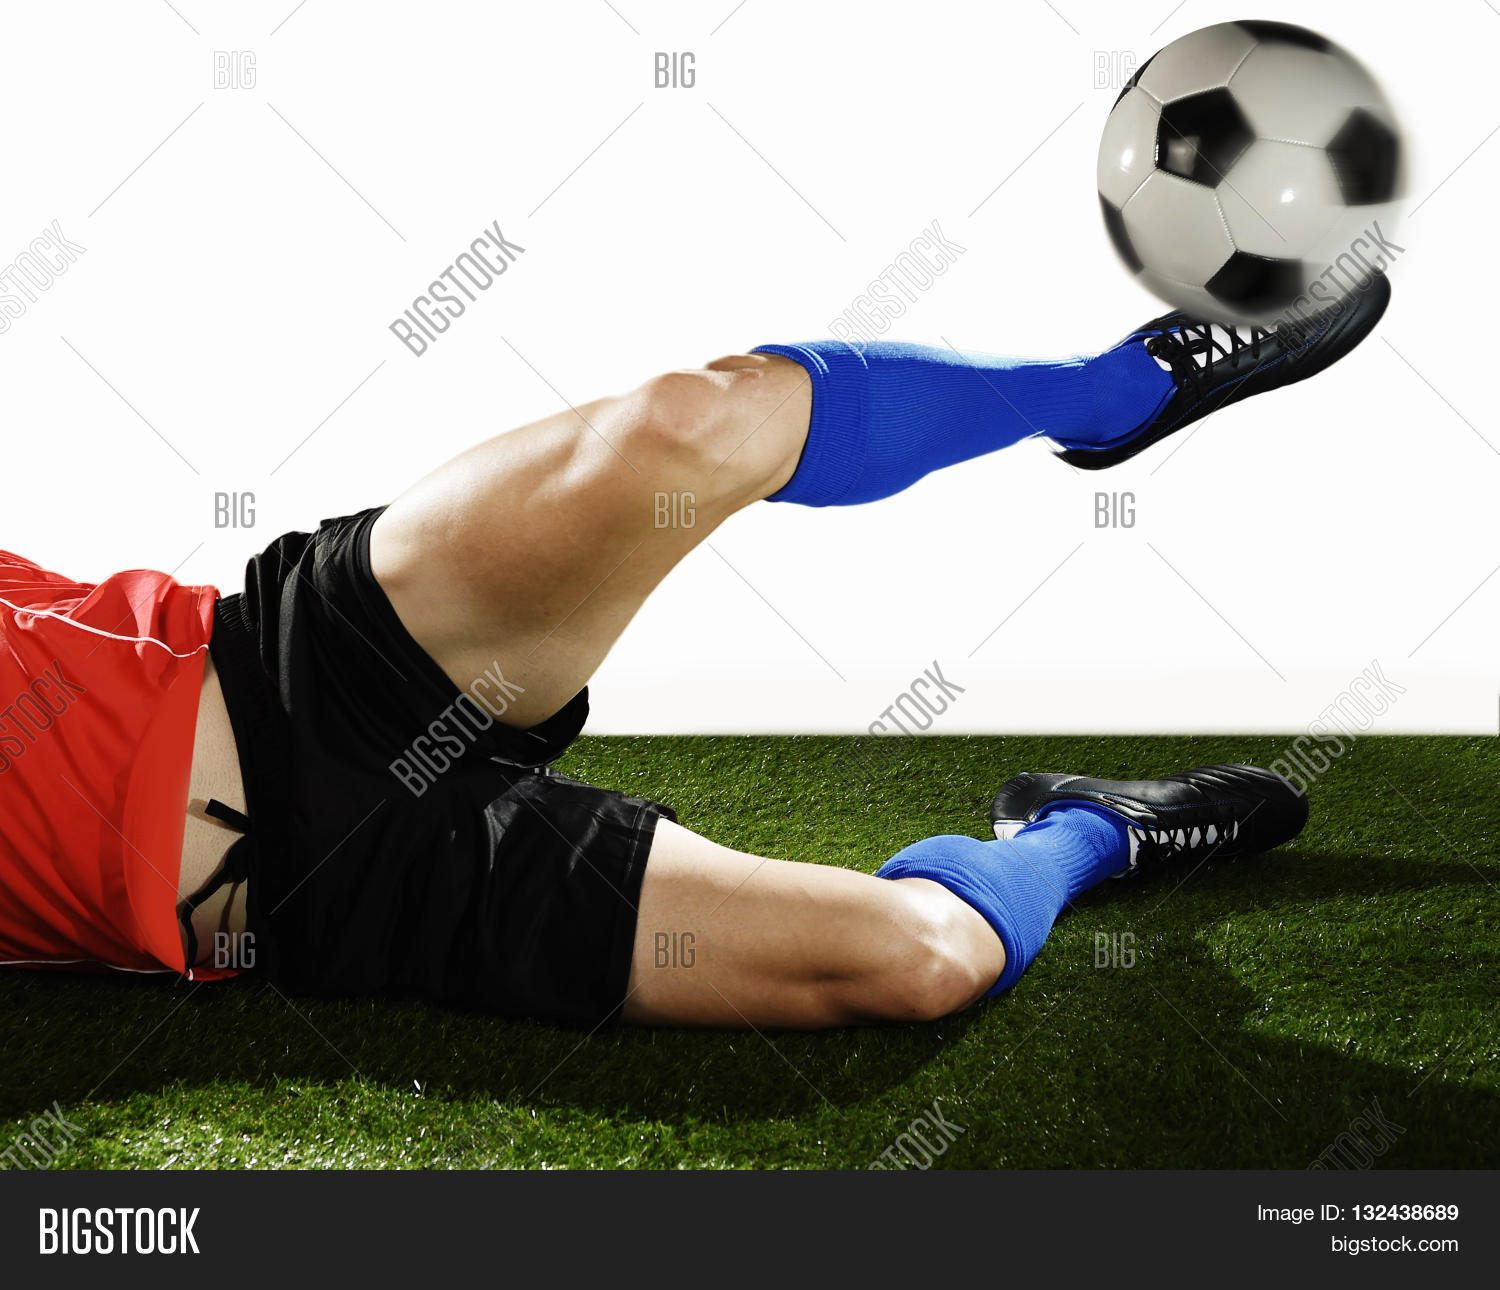 fd9830fdd football player in action doing tackle and kicking ball isolated on white  background wearing red jersey